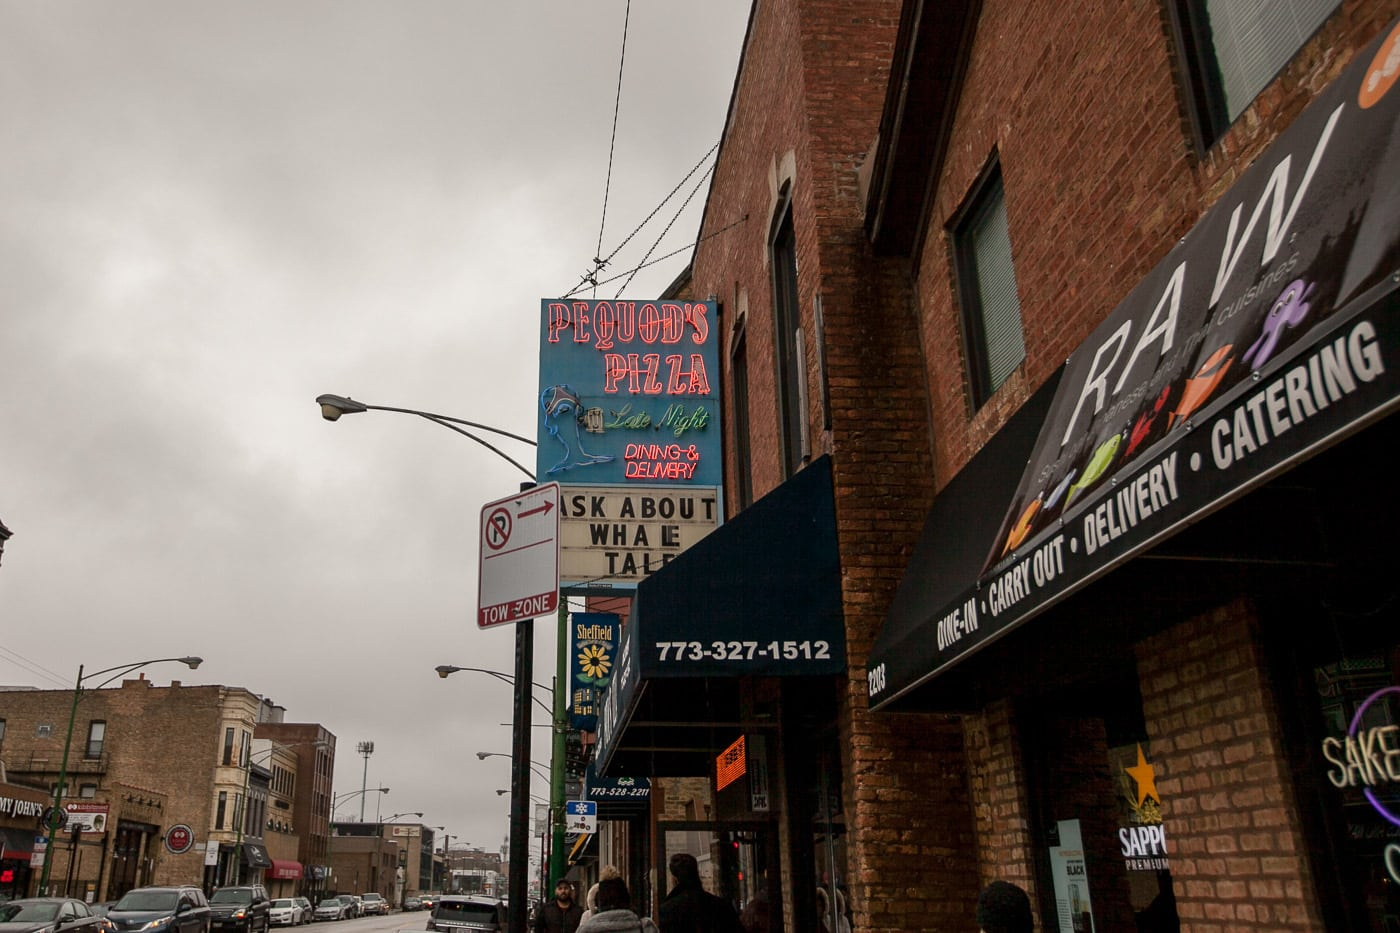 Pizza tour of Chicago with Chicago Pizza Tours - Pequod's Pizza